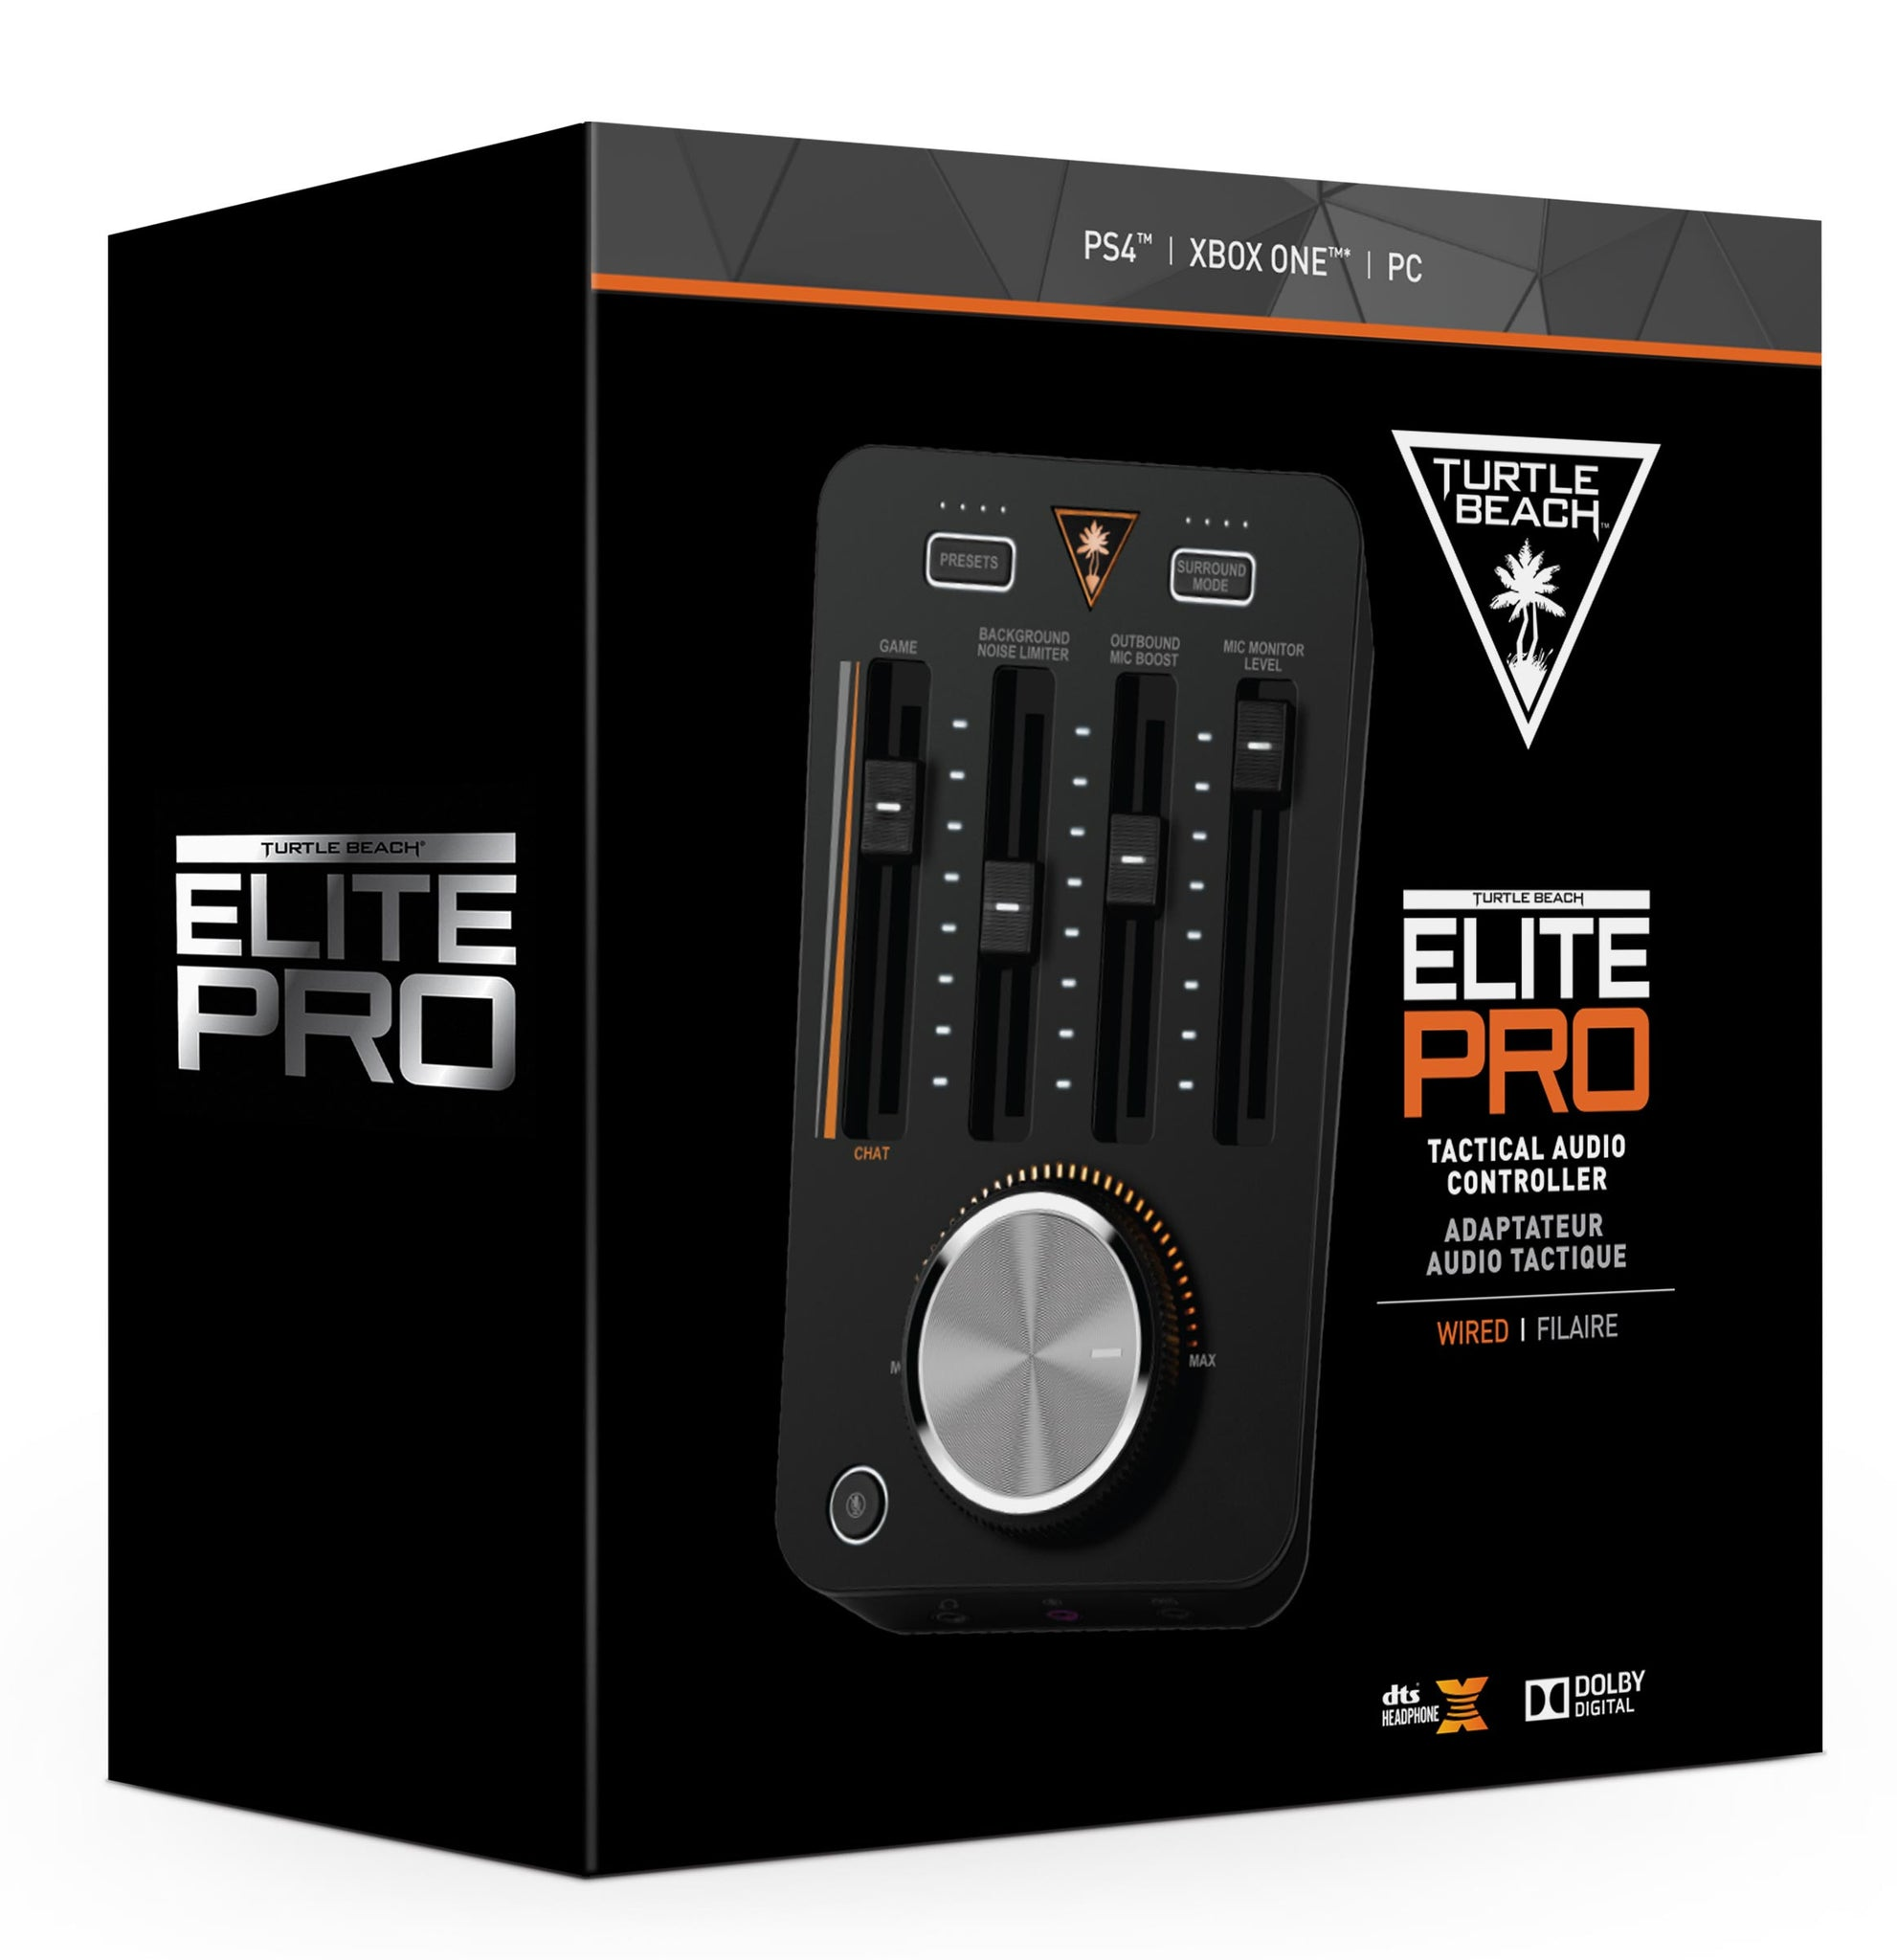 Turtle Beach Elite Pro Tactical Audio Controller - Multi Platform